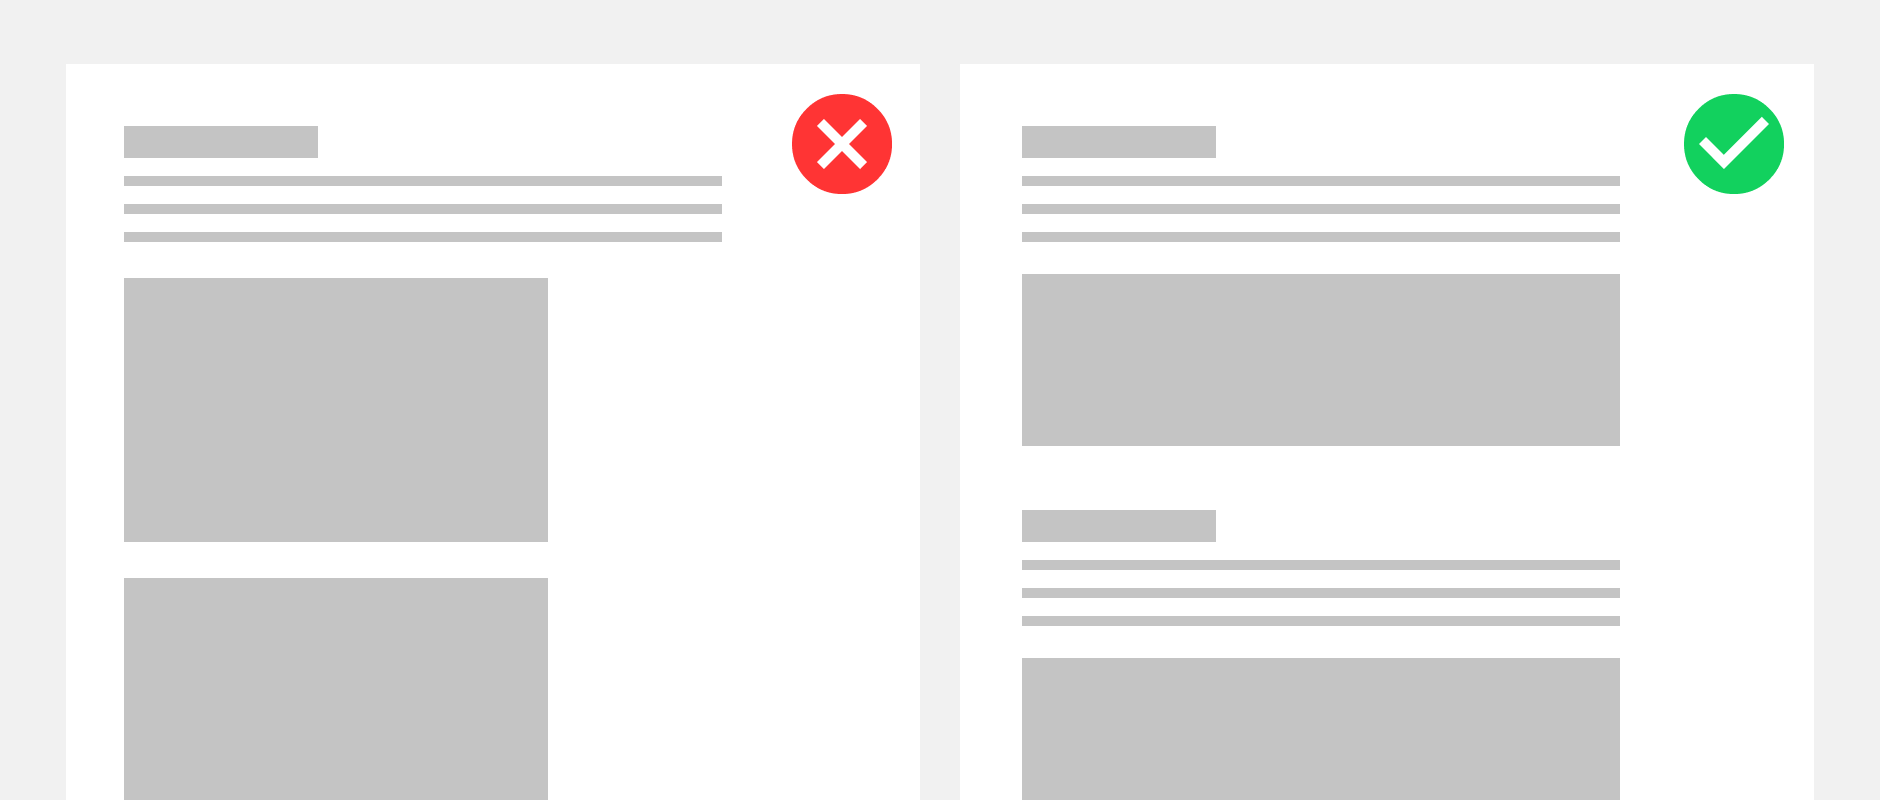 One website with a page-wide header and one with a smaller header to showcase the importance of content design.